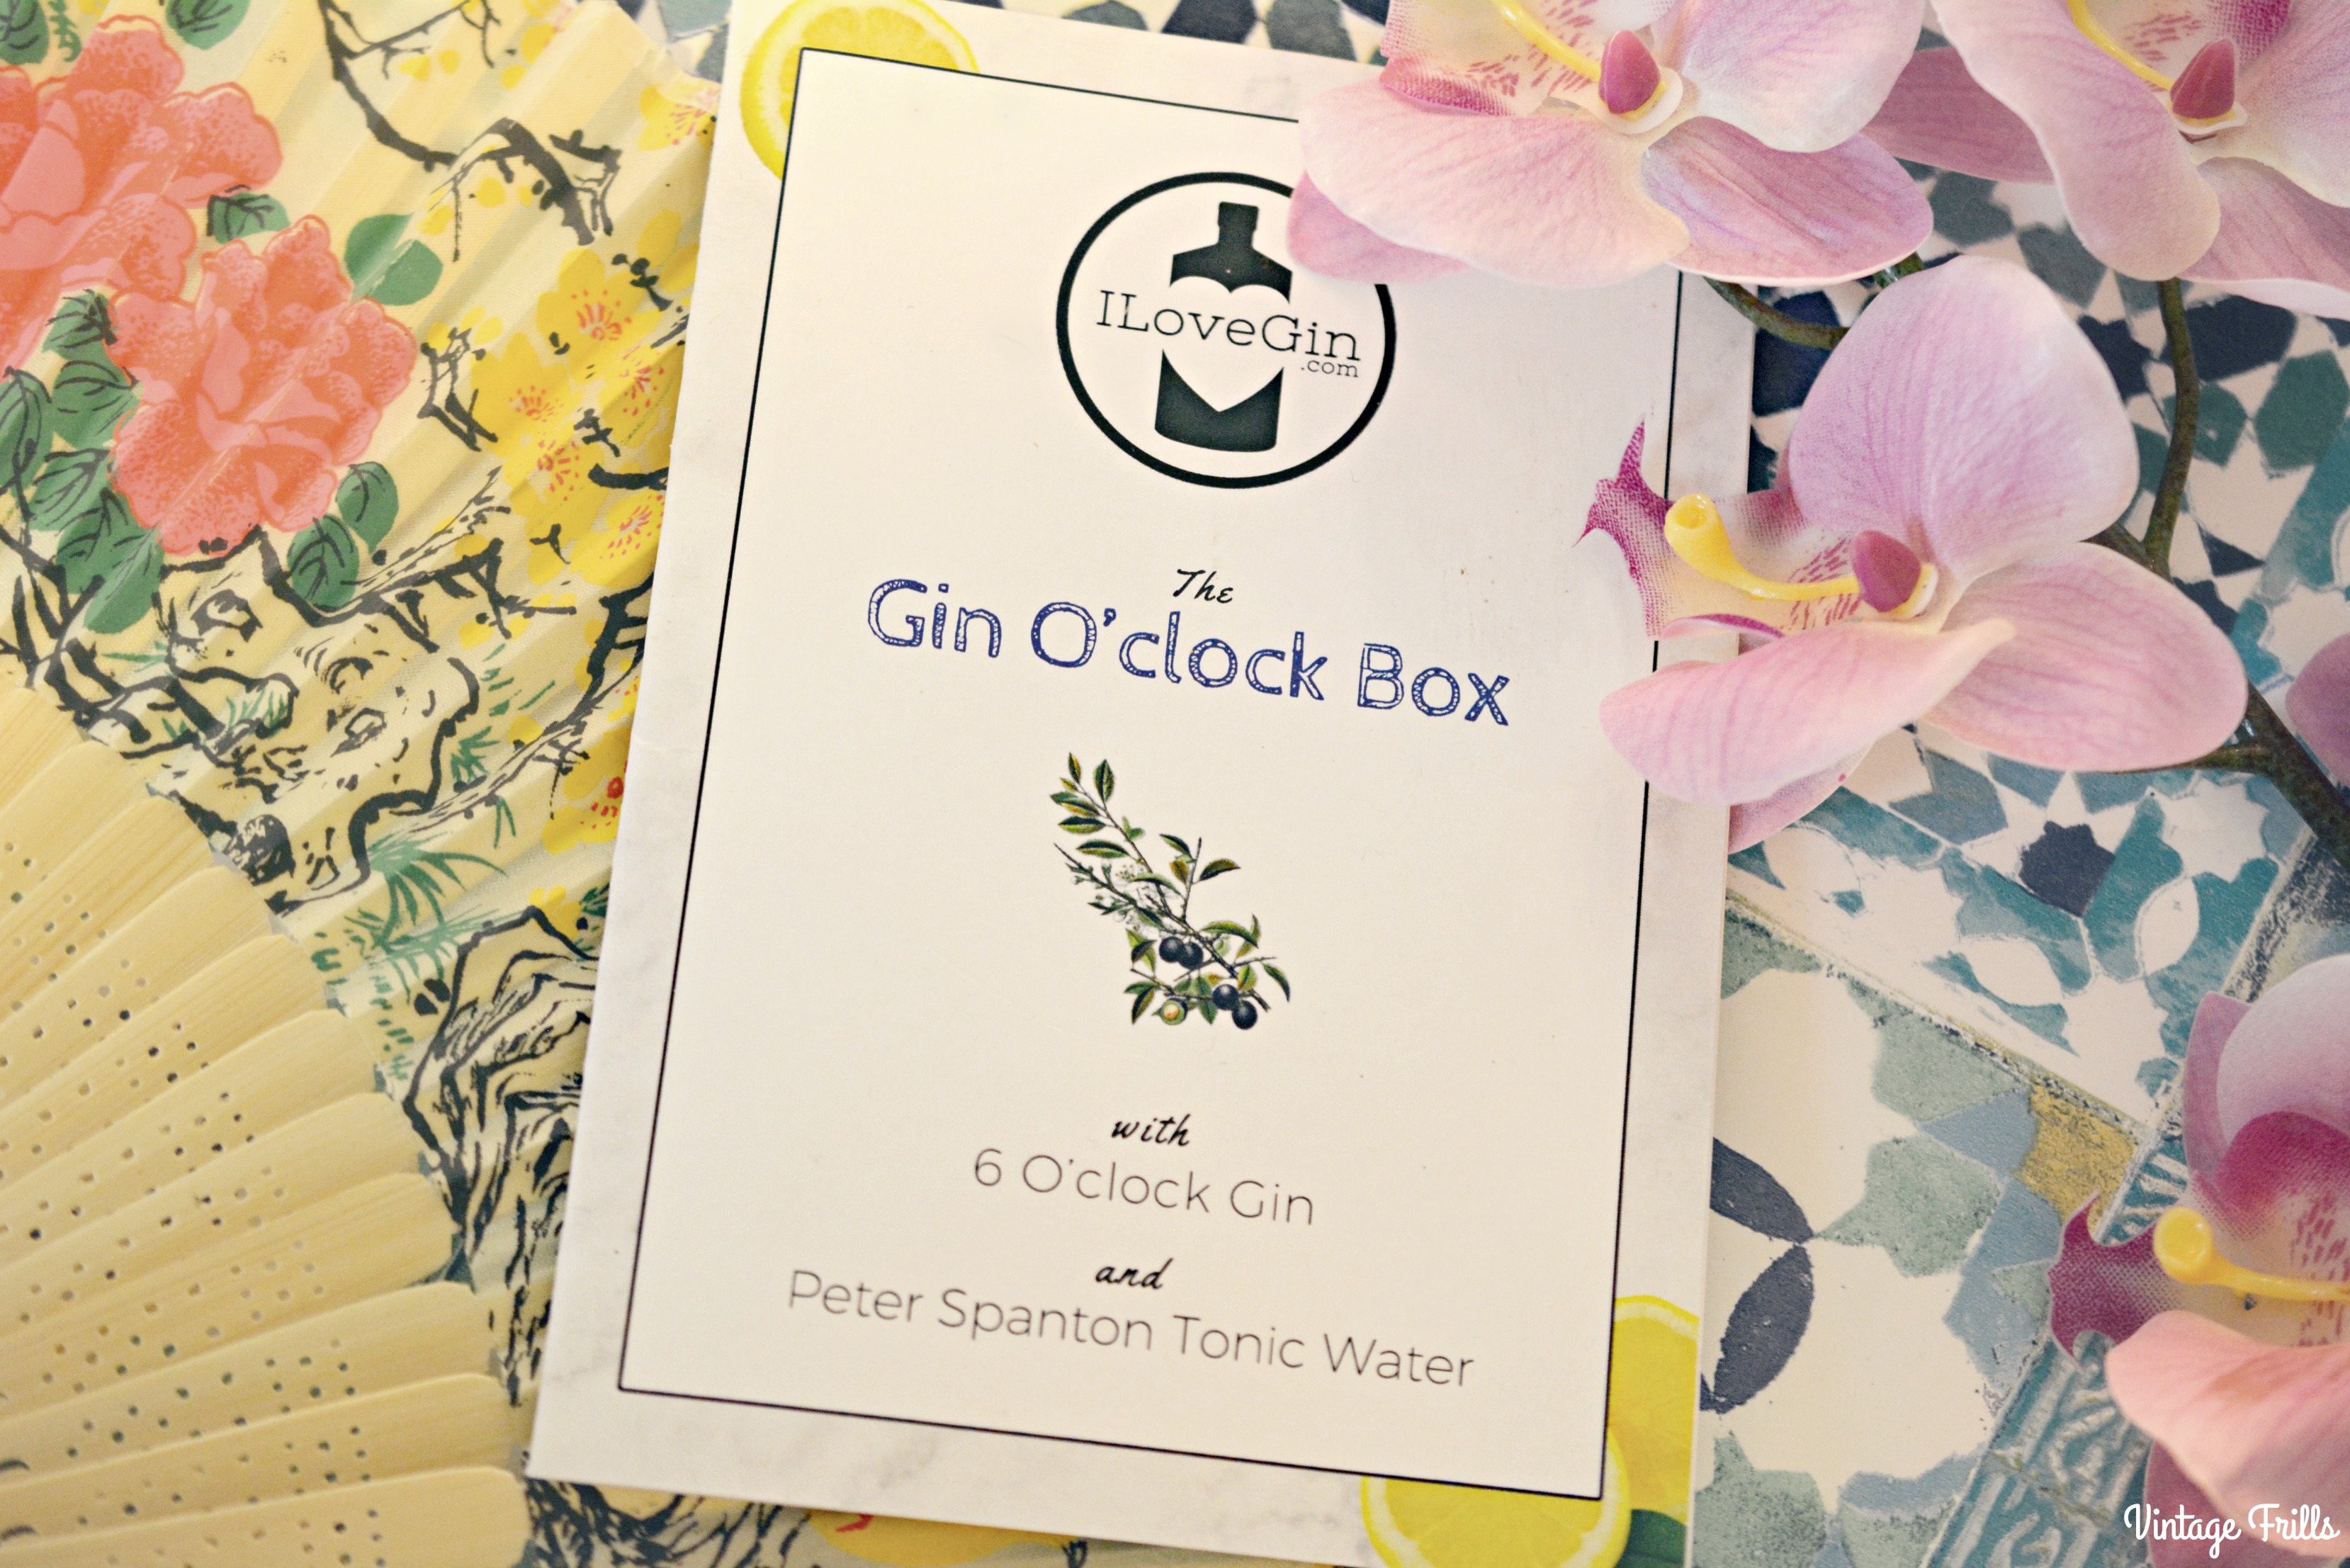 I Love Gin - Gin O'Clock Box Review